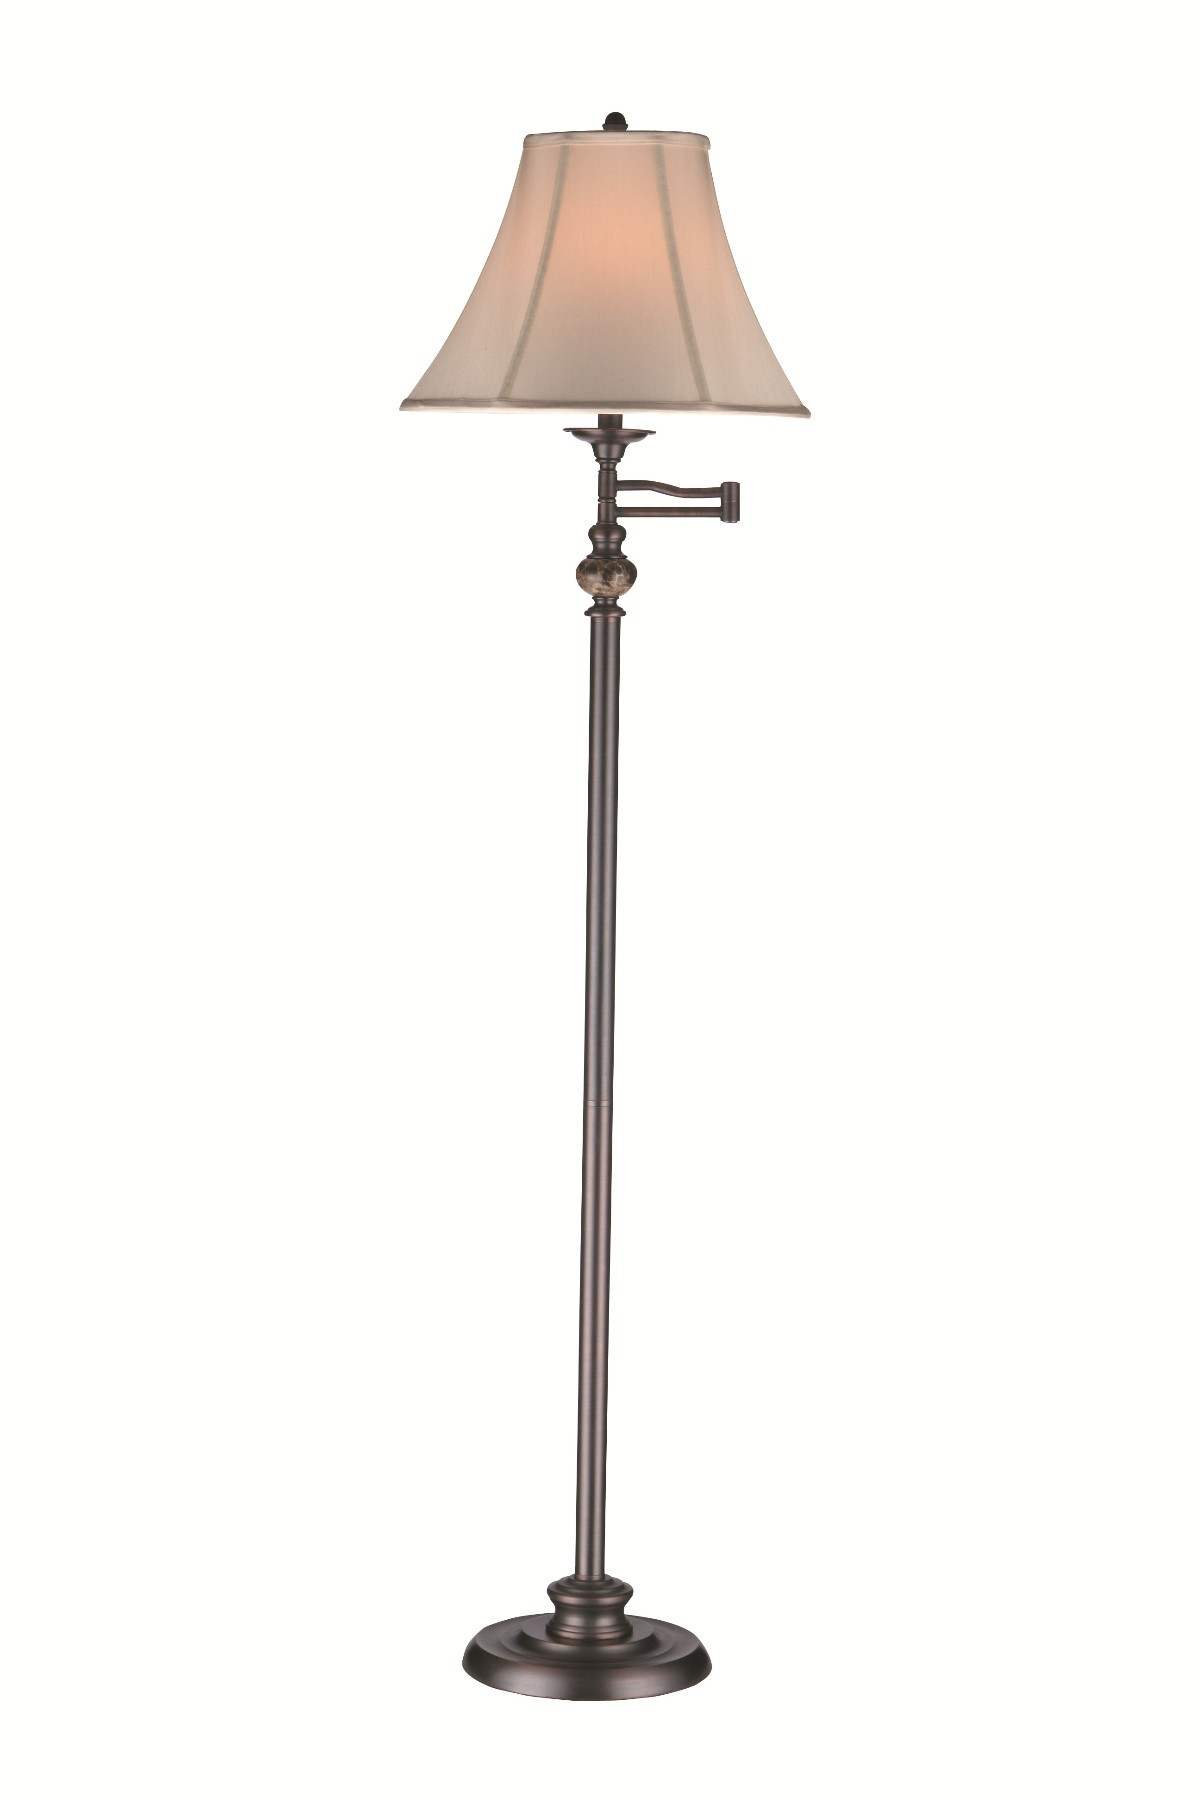 Swing arm floor lamp 97948 stein world for Swing arm floor lamp wood